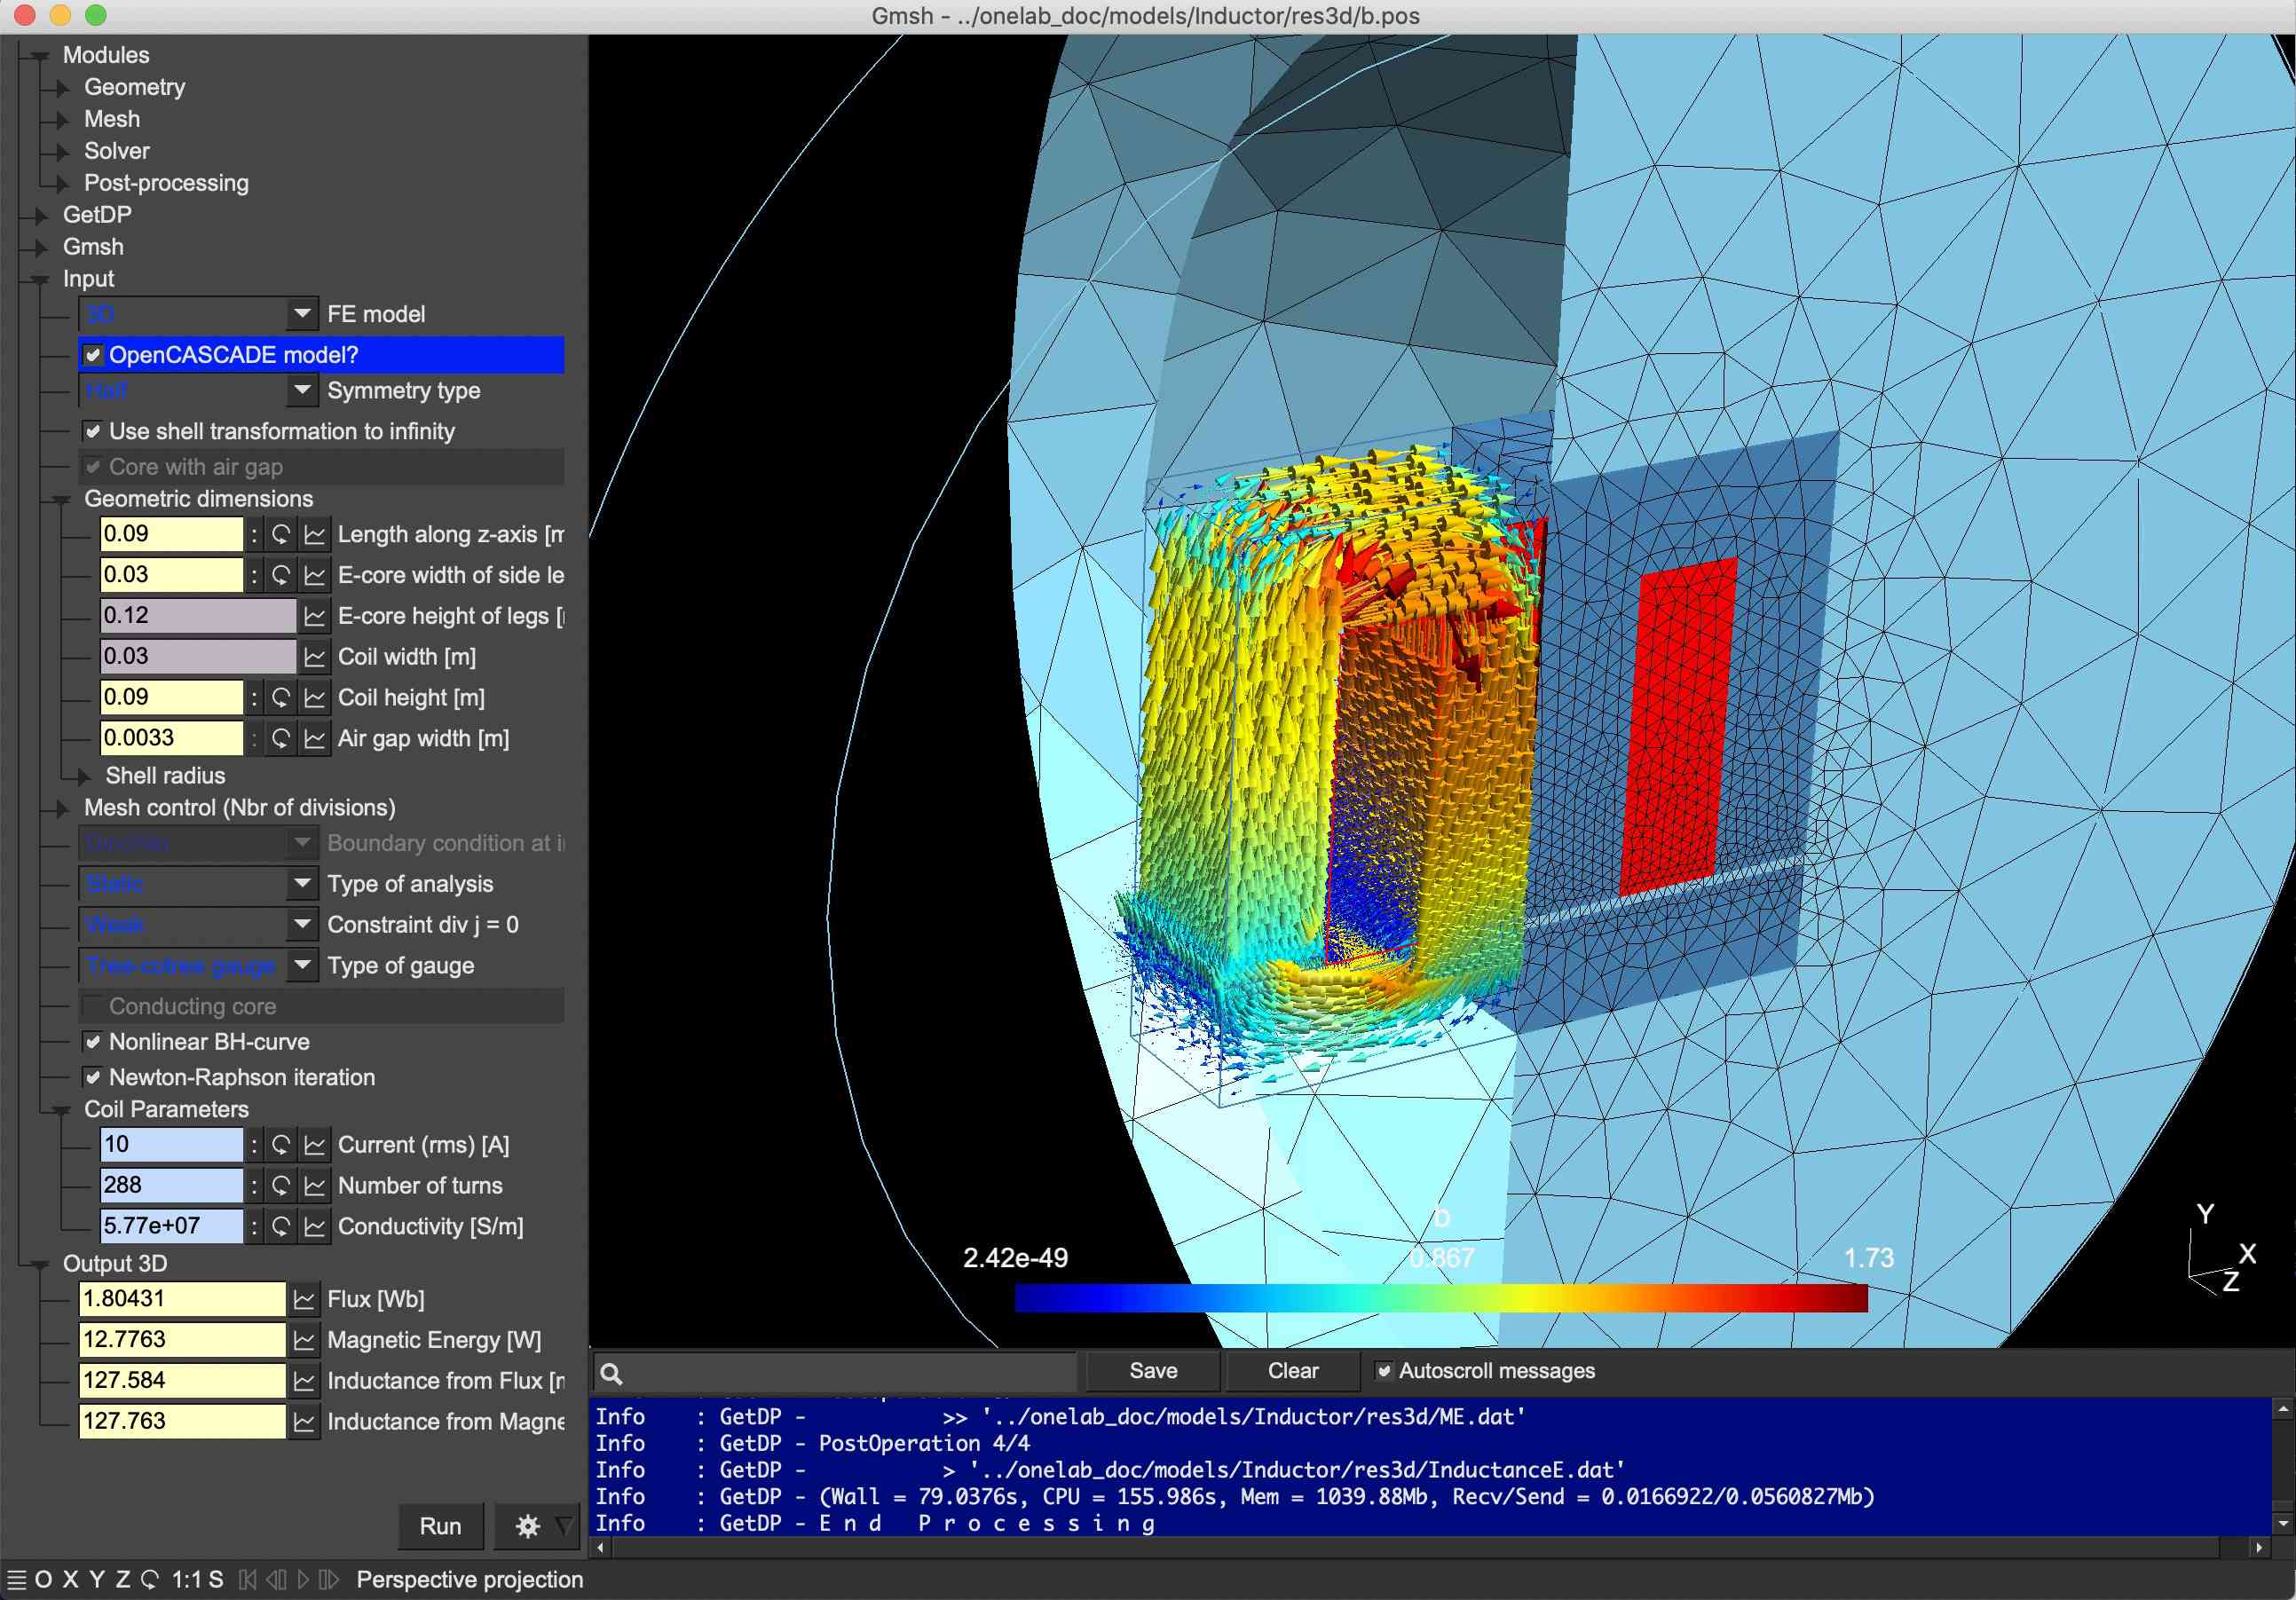 Gmsh open-source STL viewer and modeling software